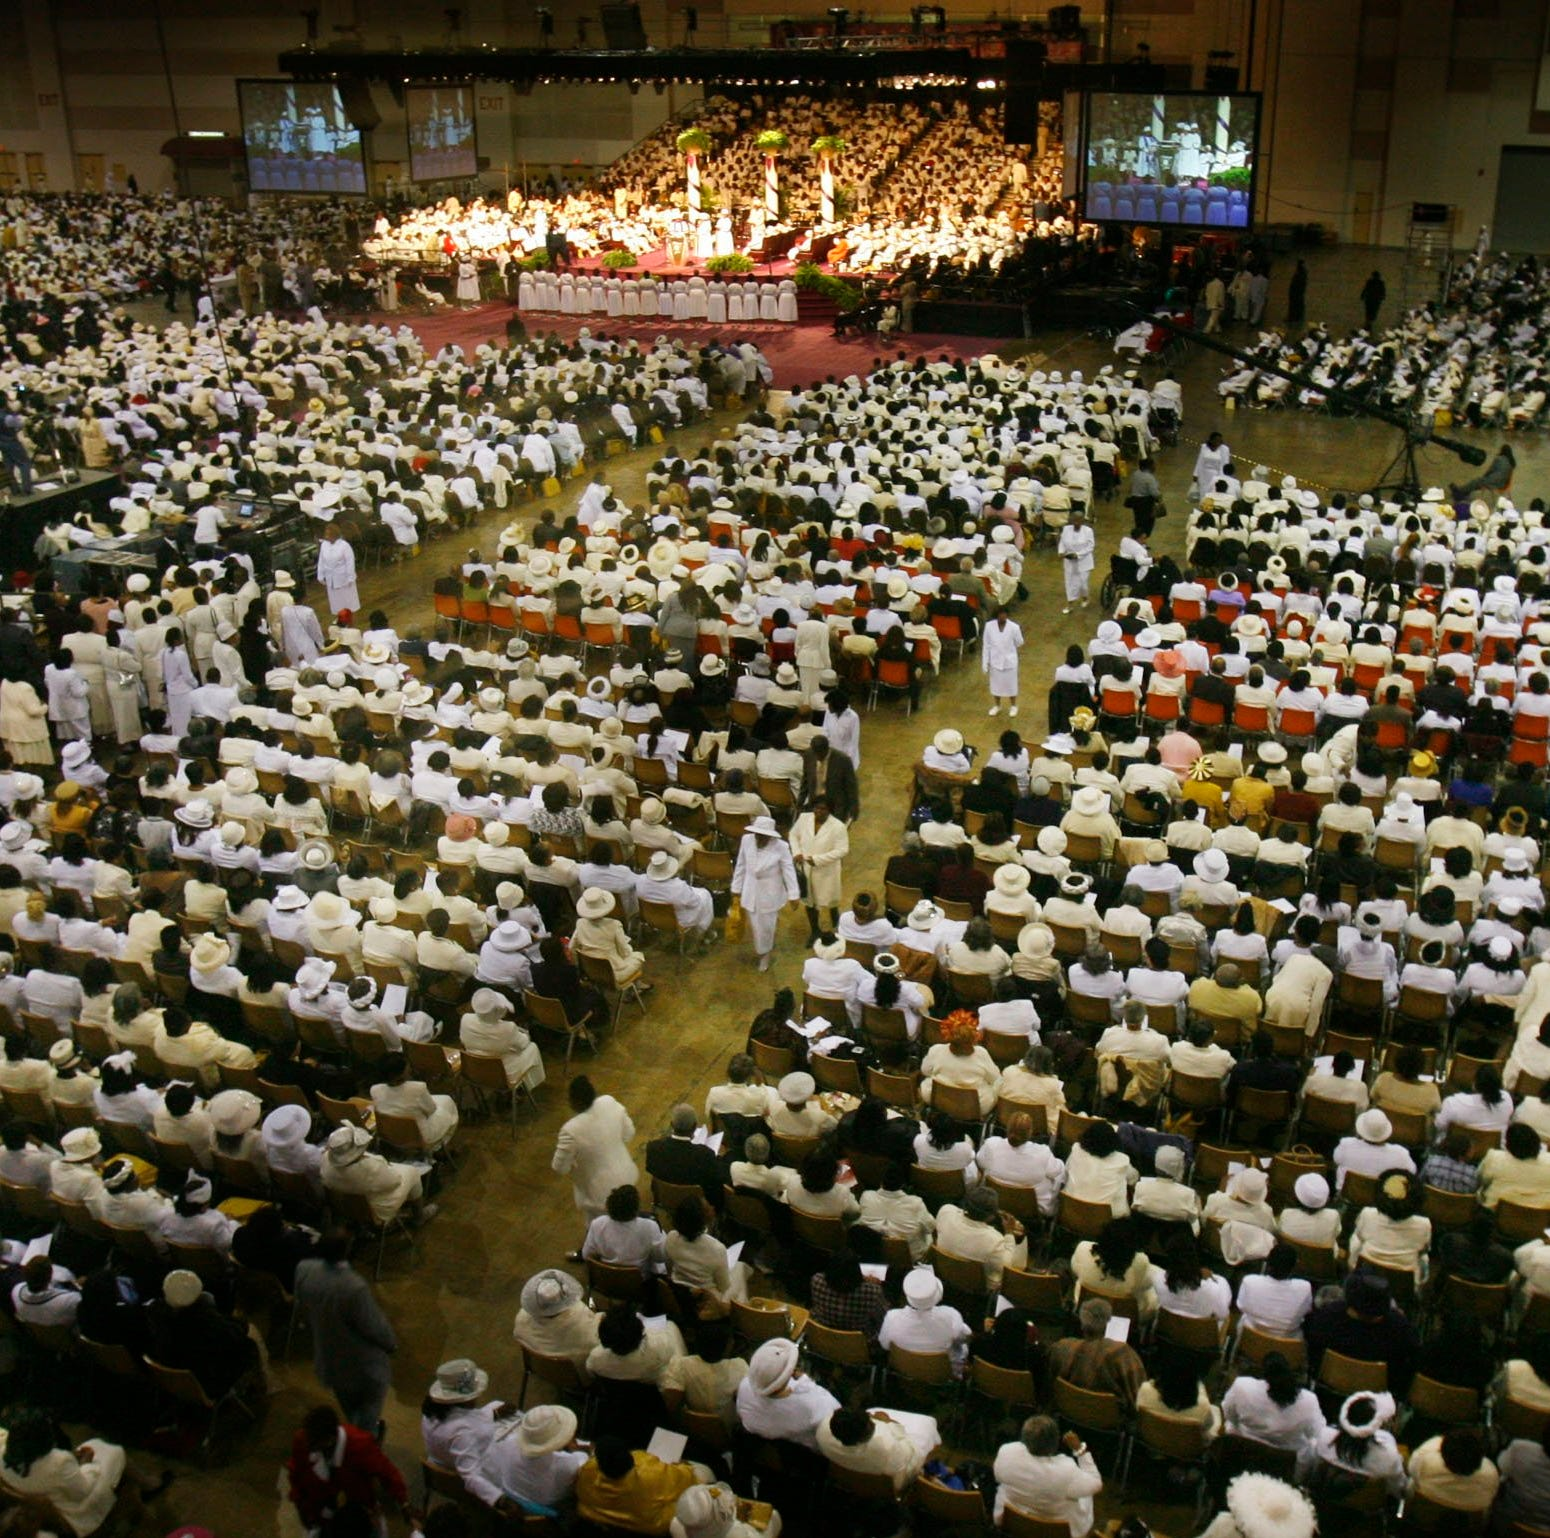 COGIC leader from Memphis appears to use anti-gay slur at recent Holy Convocation